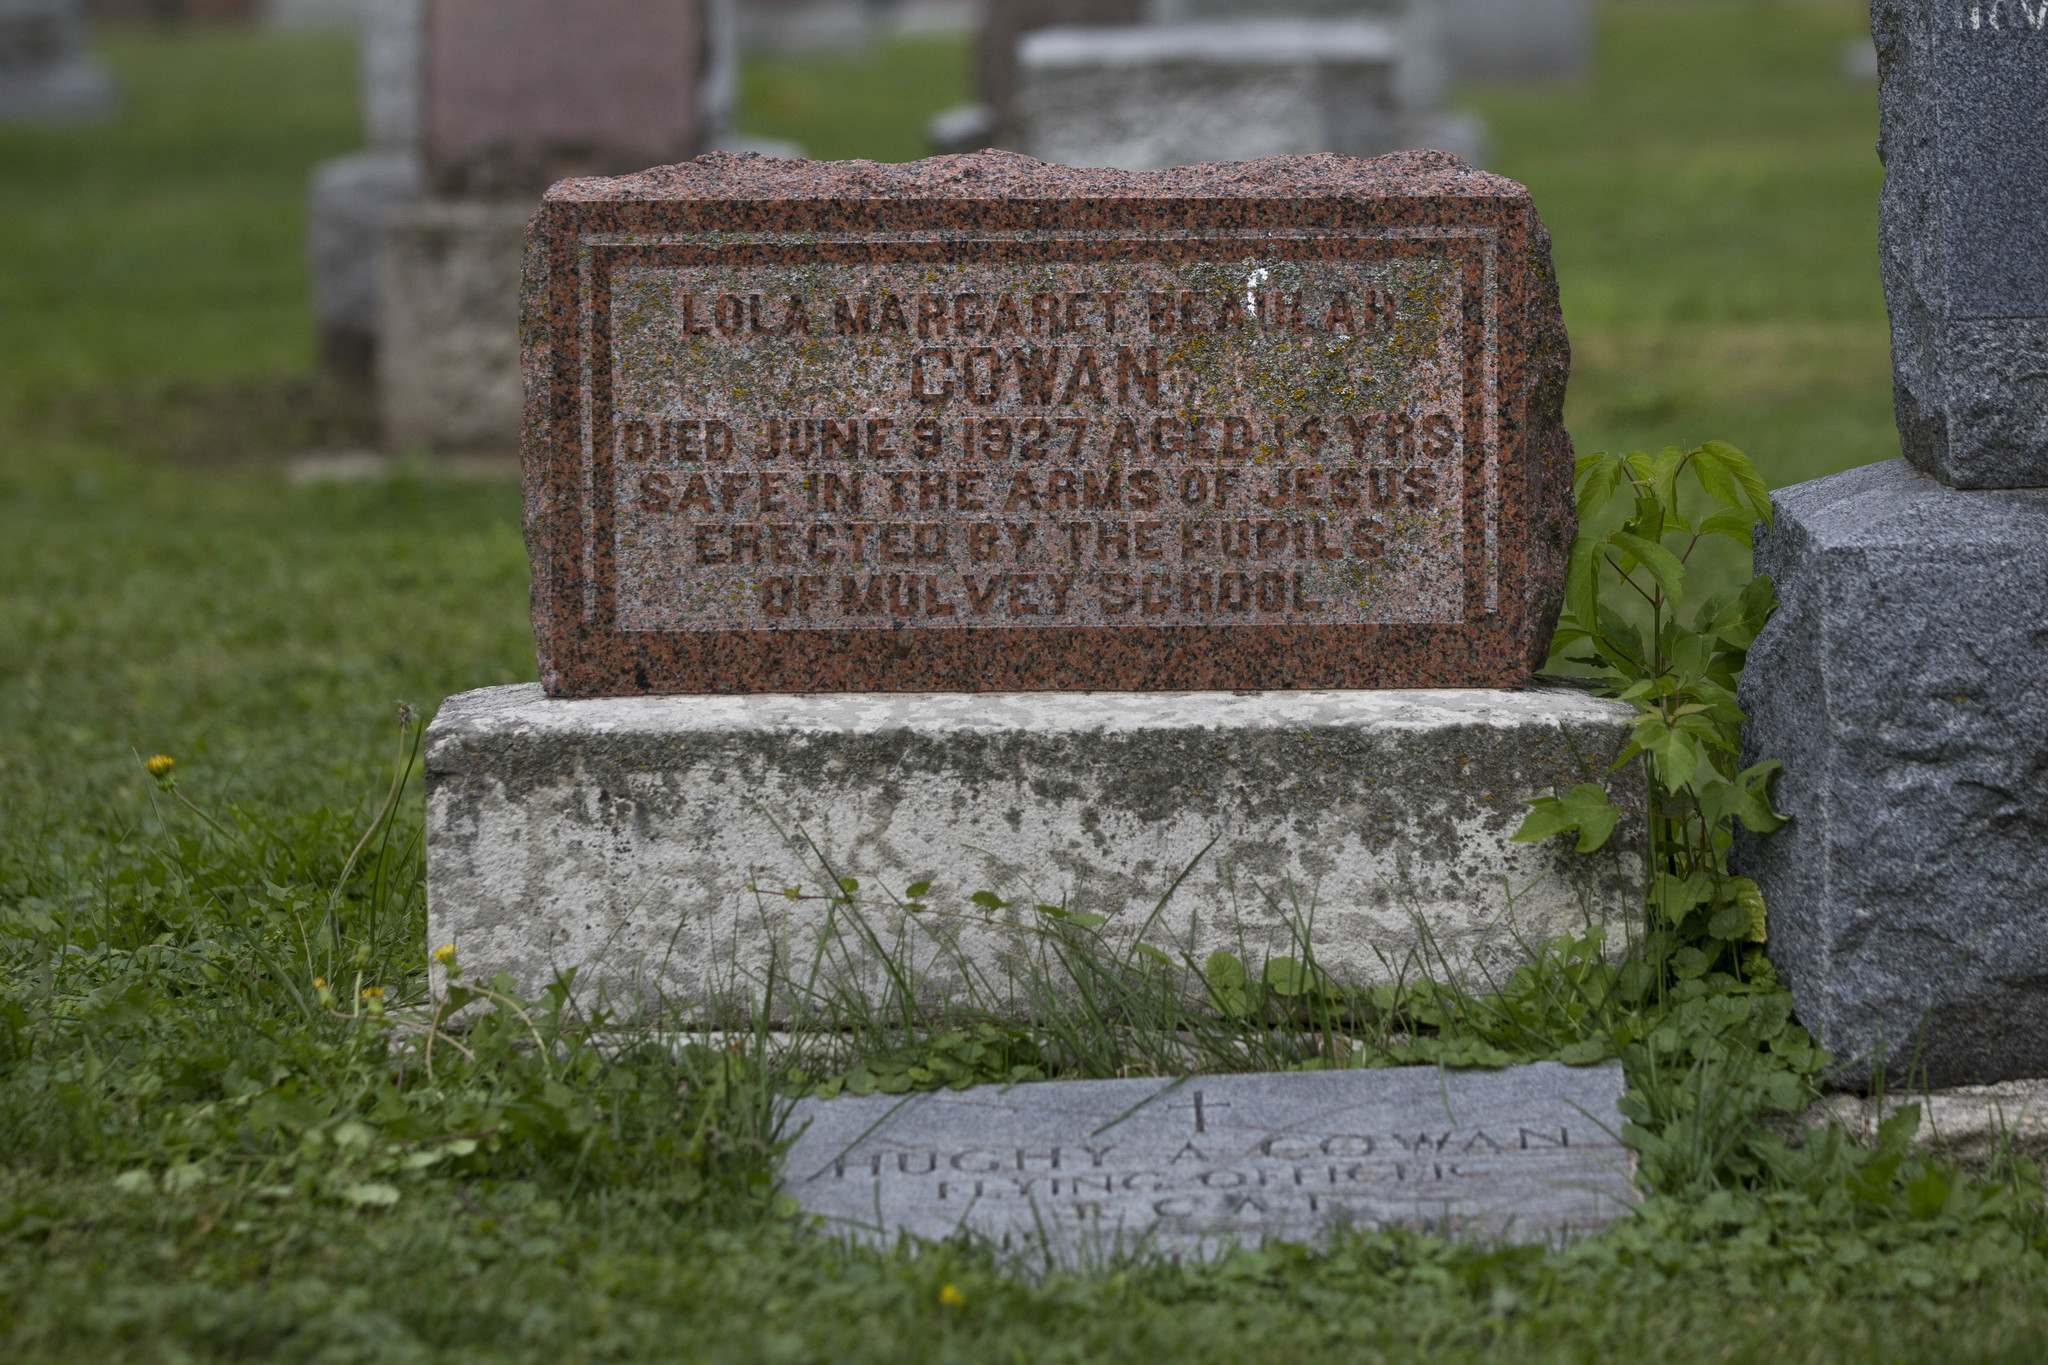 Photos by RUTH BONNEVILLE / WINNIPEG FREE PRESS</p><p>The gravestone of Lola Cowan was erected thanks to money raised by pupils of Mulvey School. The 14-year-old was a victim of the Dark Strangler.</p></p>